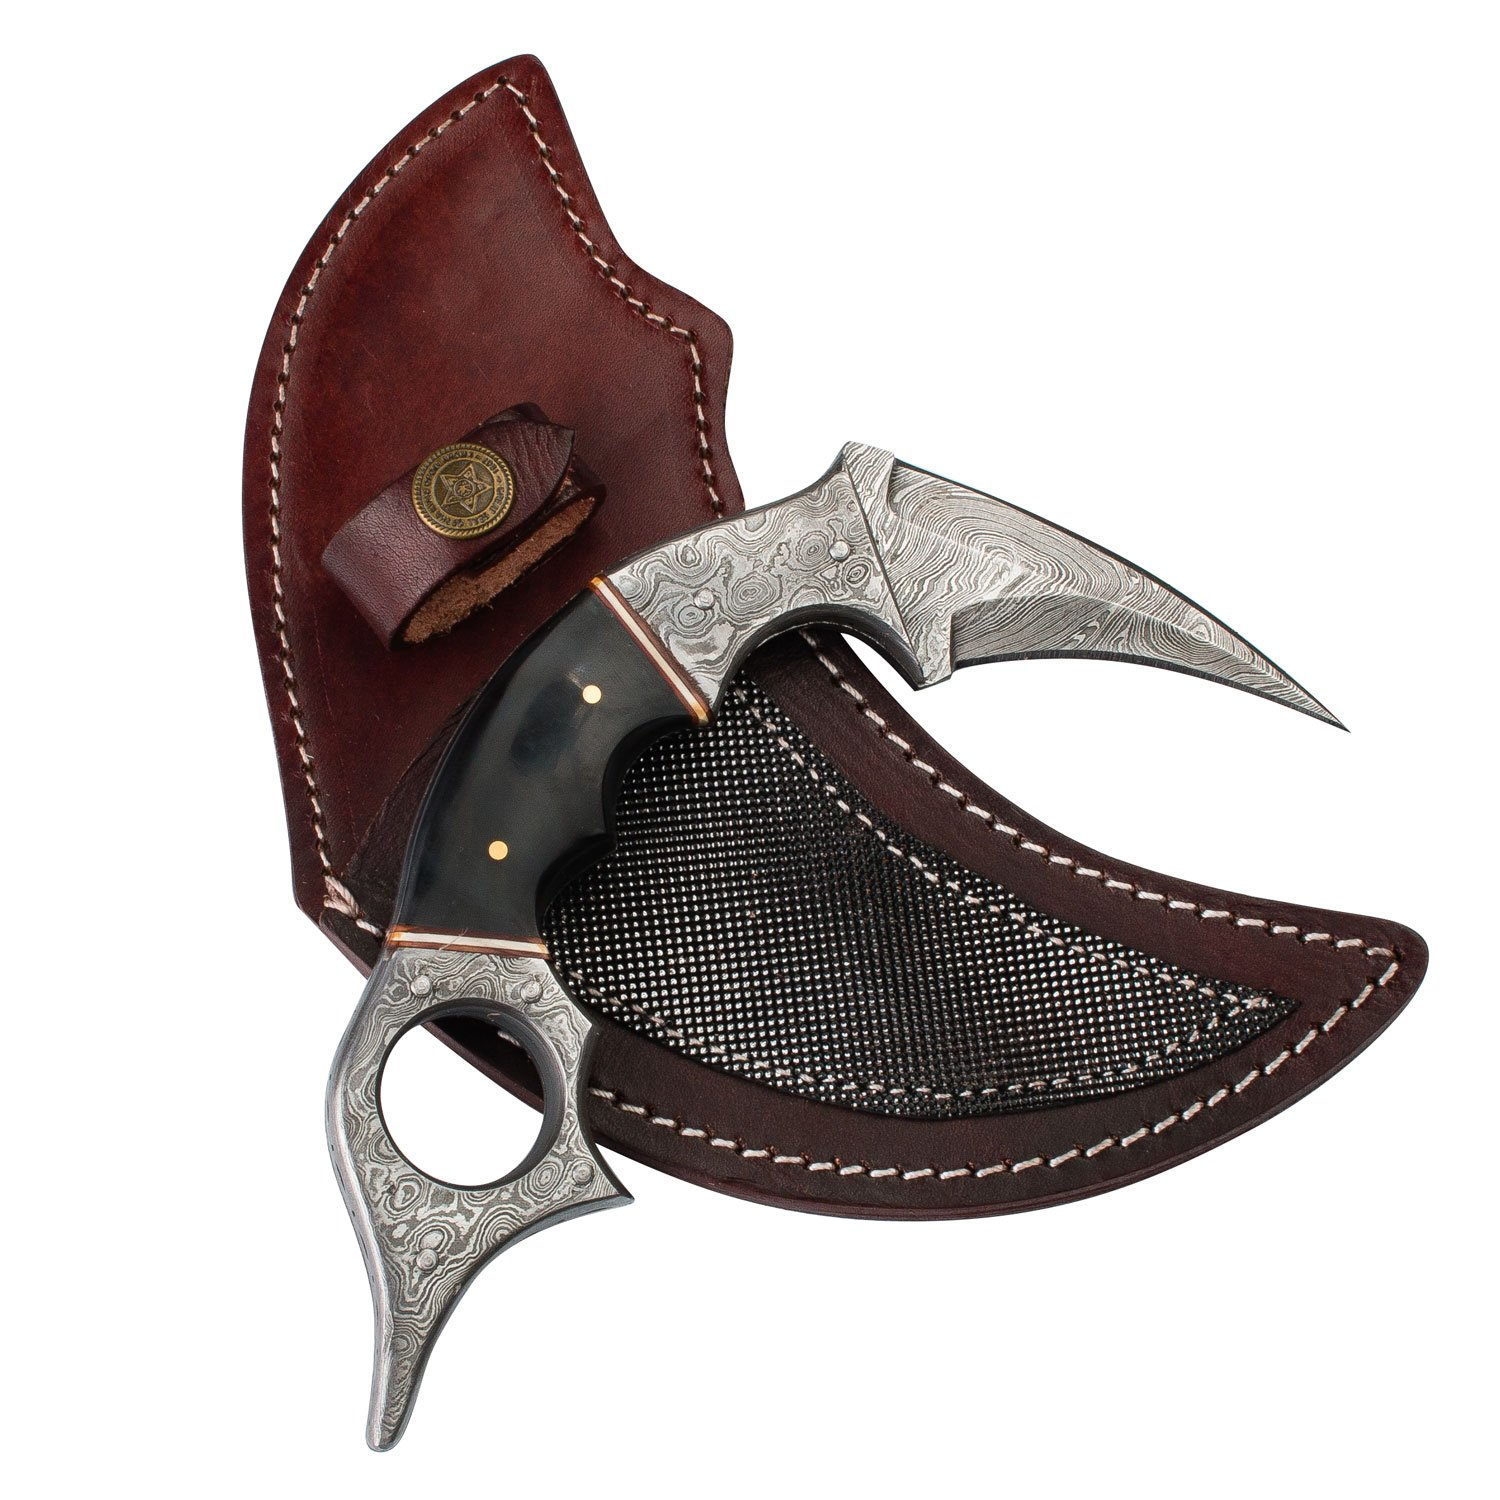 Dragon's Claw Damascus Steel Karambit with Damascus Steel Safety Ring and Custom Leather Sheath